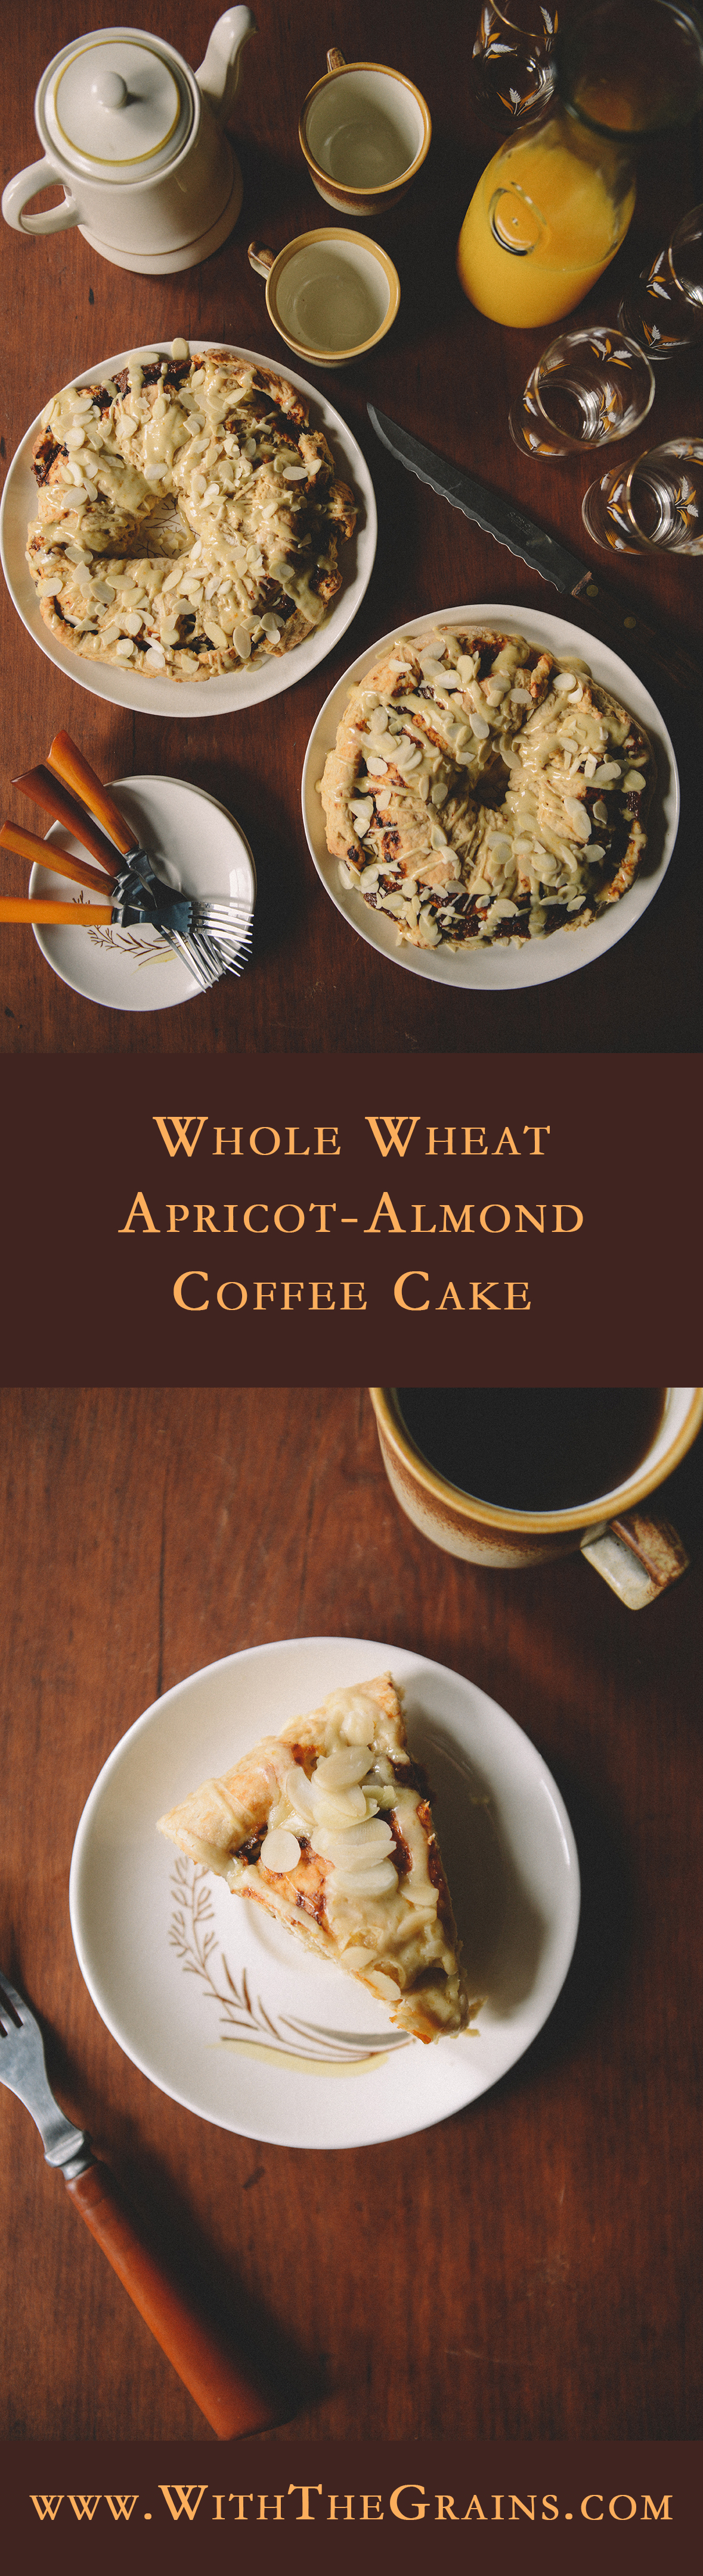 Whole Wheat Apricot-Almond Coffee Cake // www.WithTheGrains.com